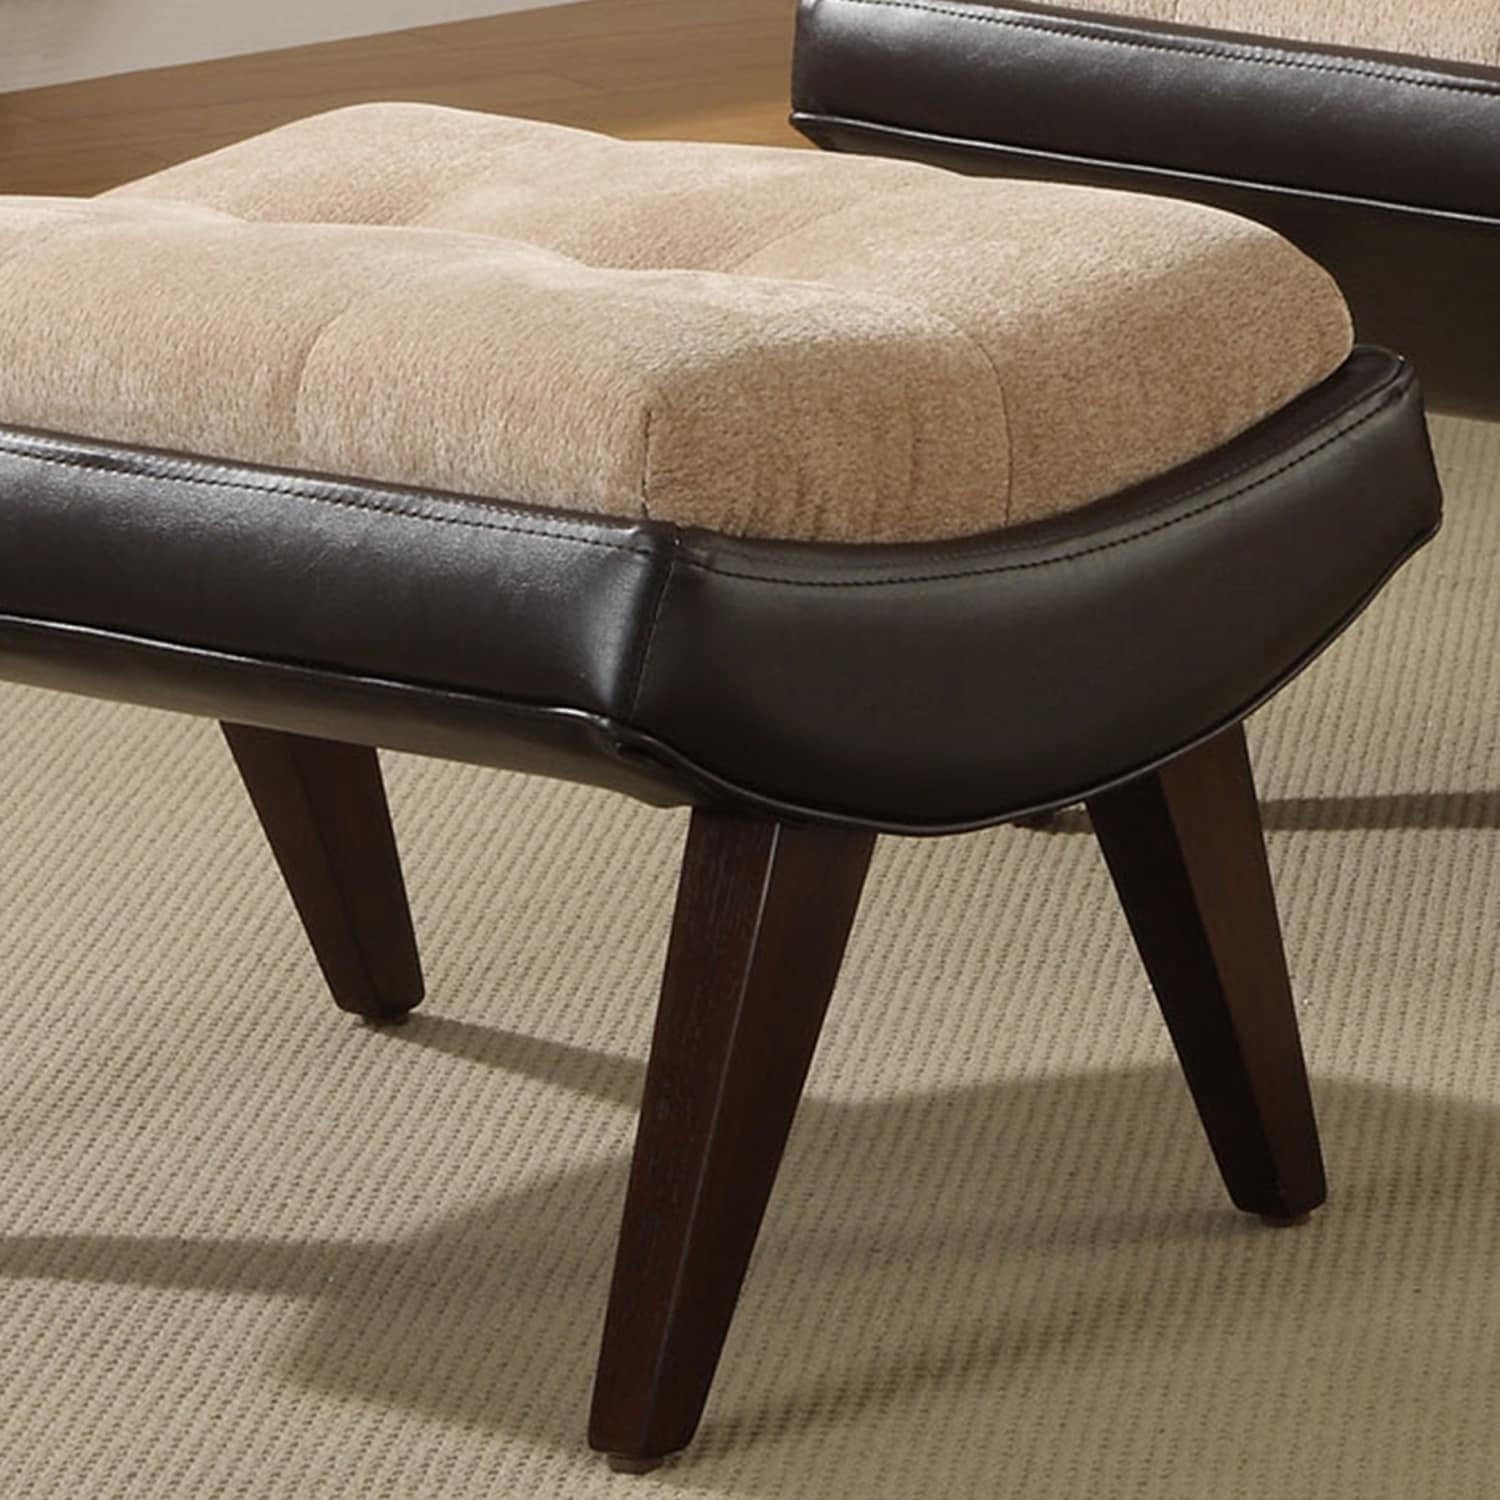 shop albury two tone lounging chair with ottoman by inspire q bold